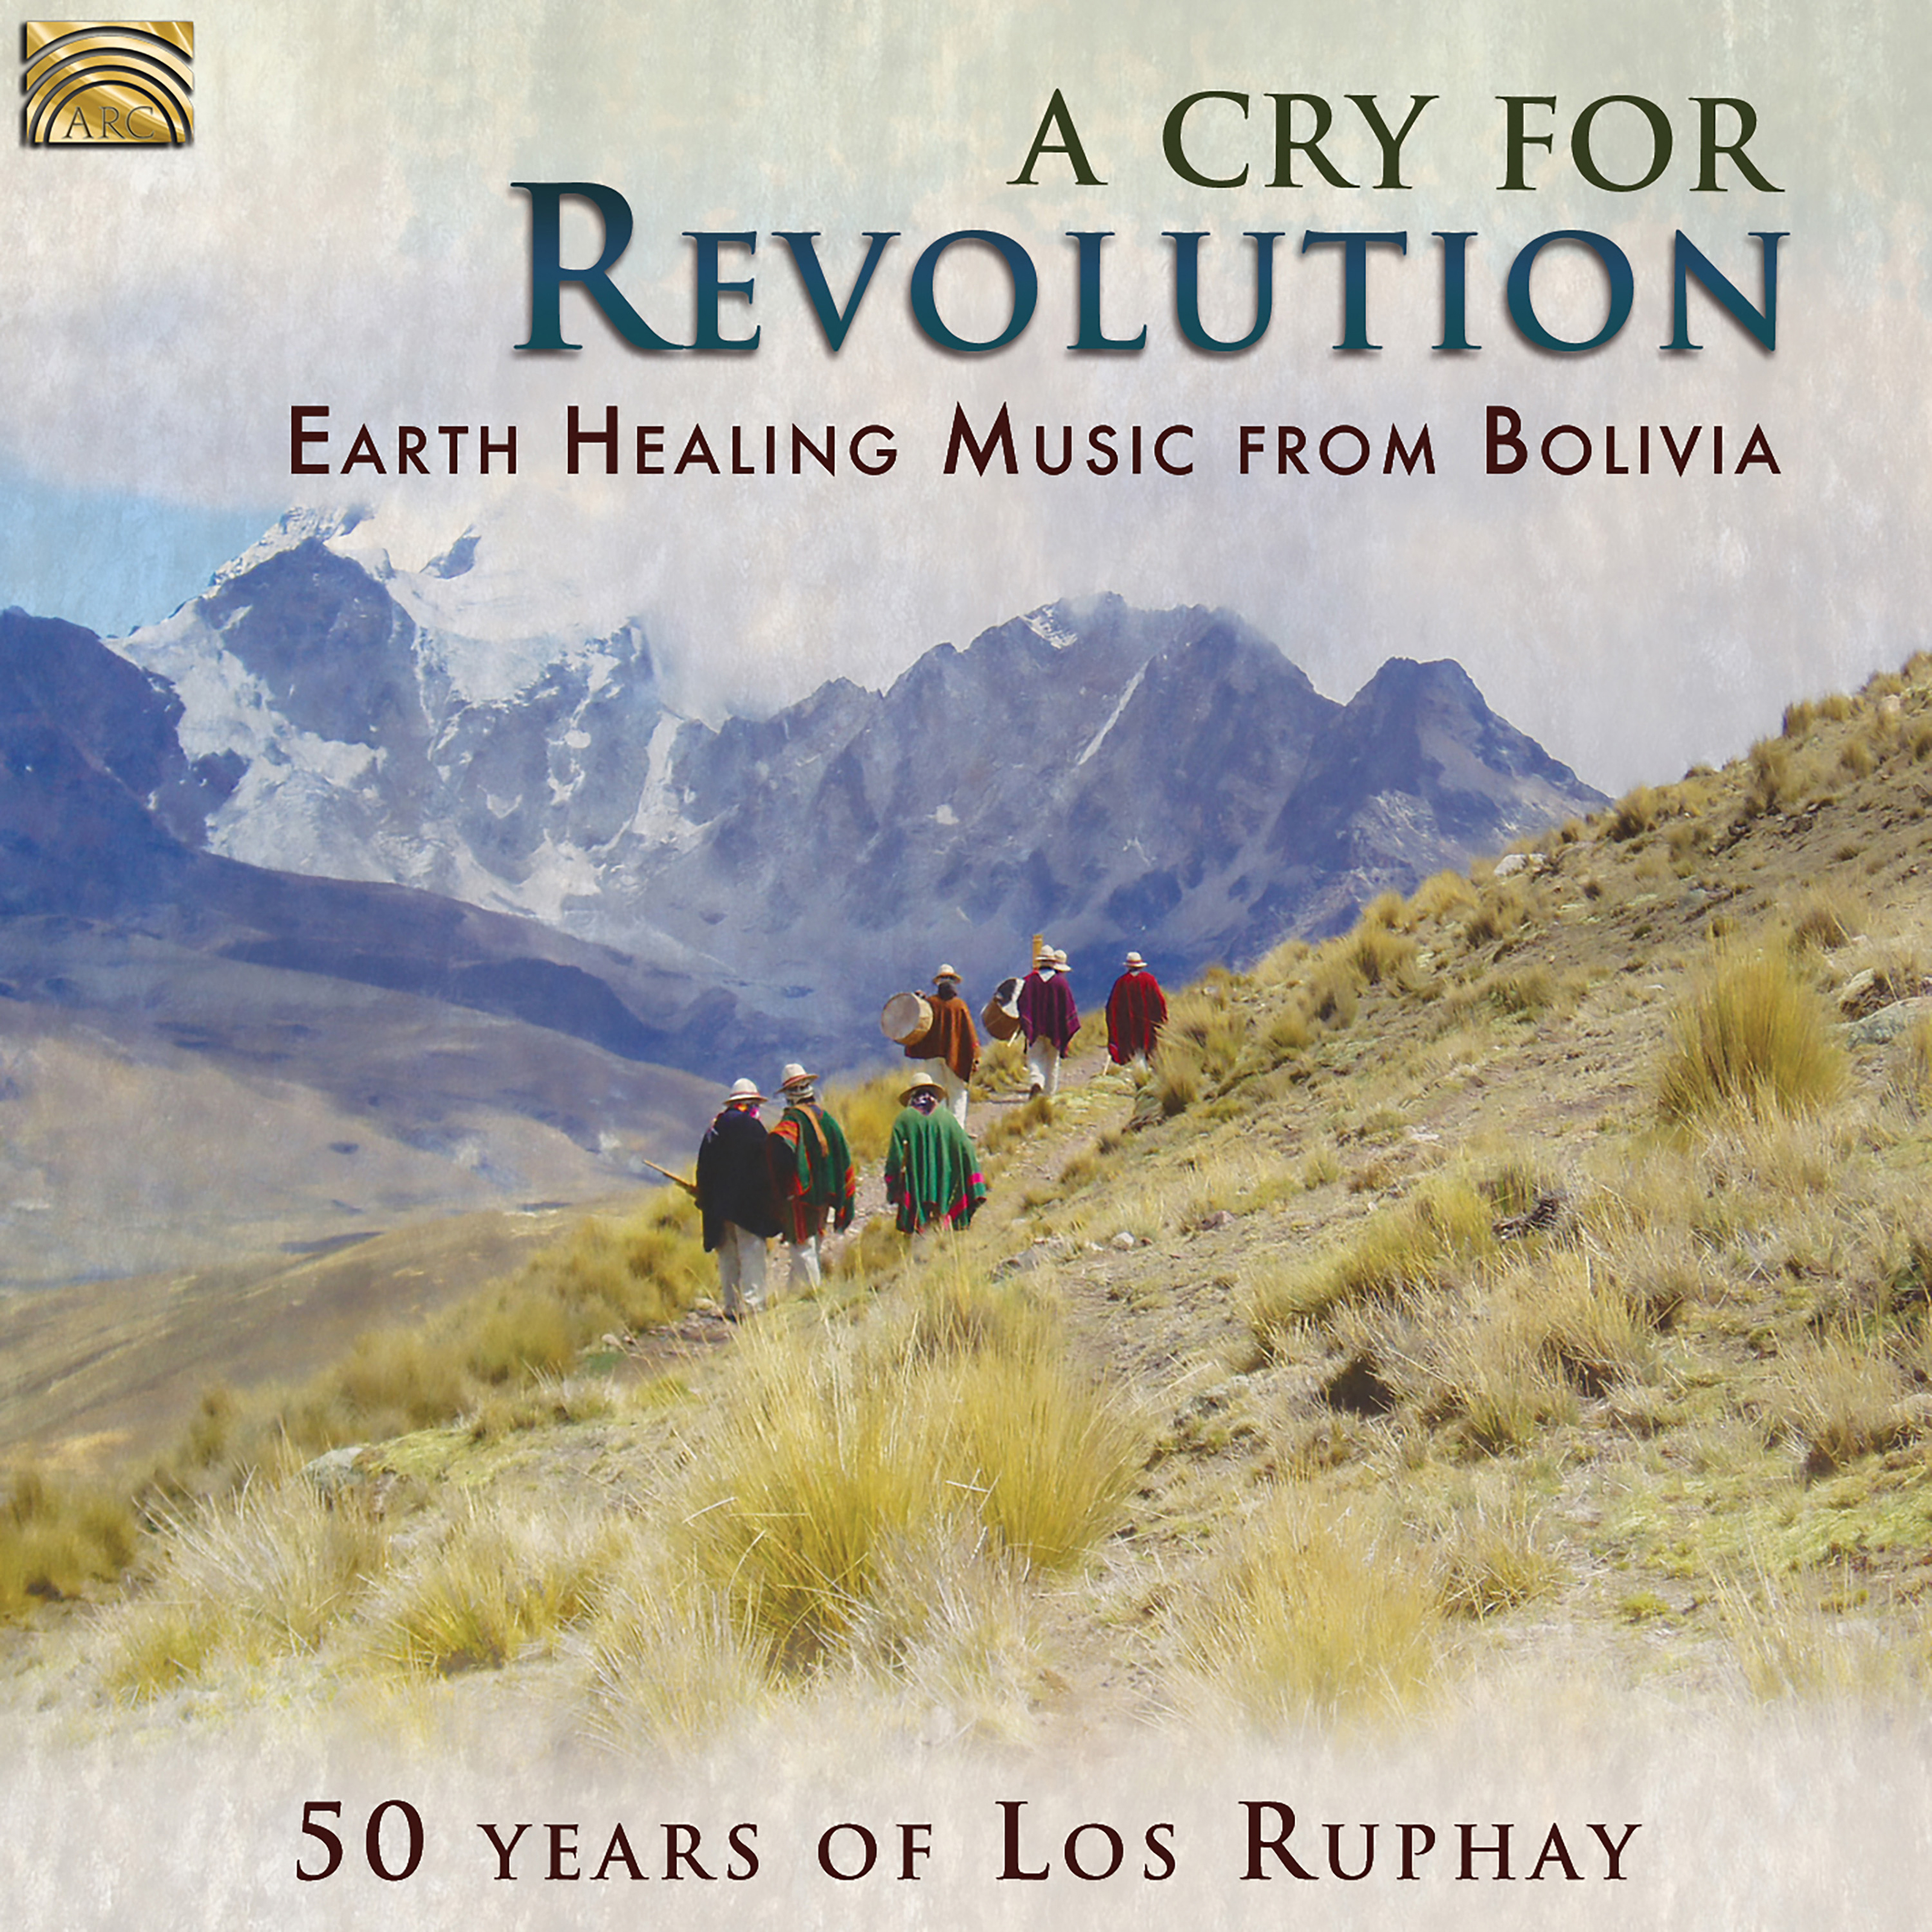 A Cry for Revolution: Earth Healing Music from Bolivia